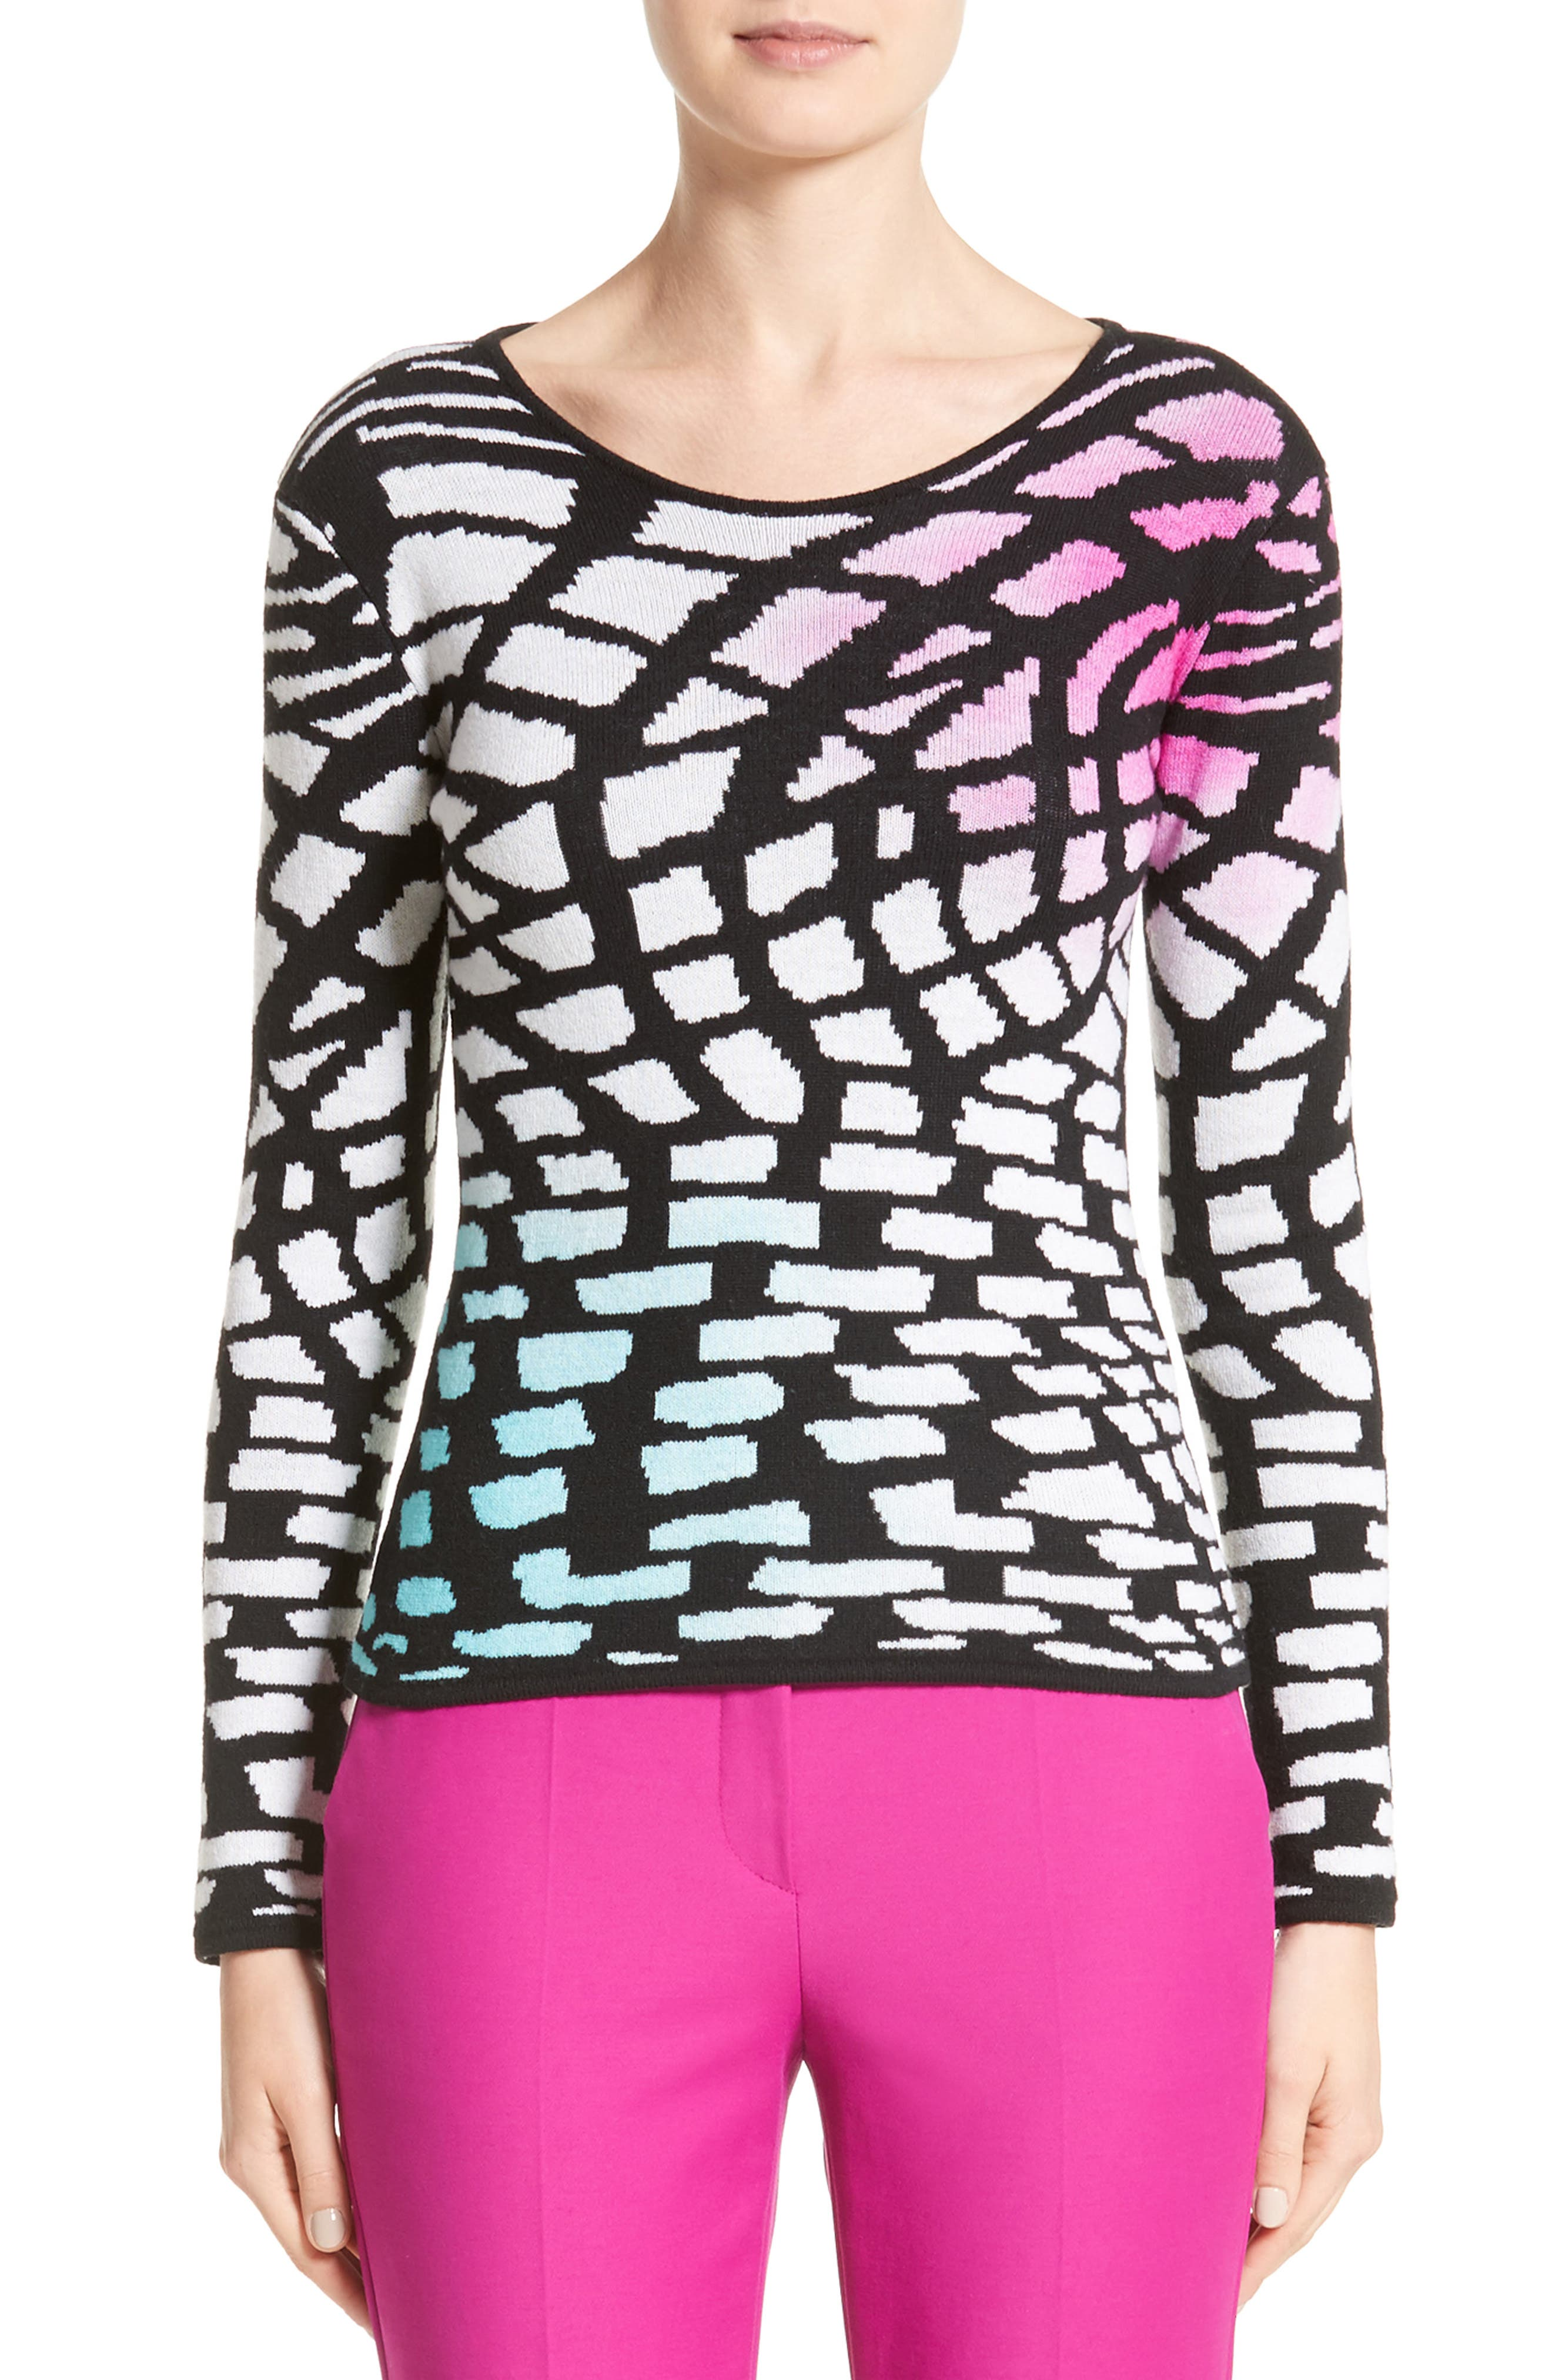 Intarsia Knit Wool & Cashmere Sweater,                         Main,                         color, 001